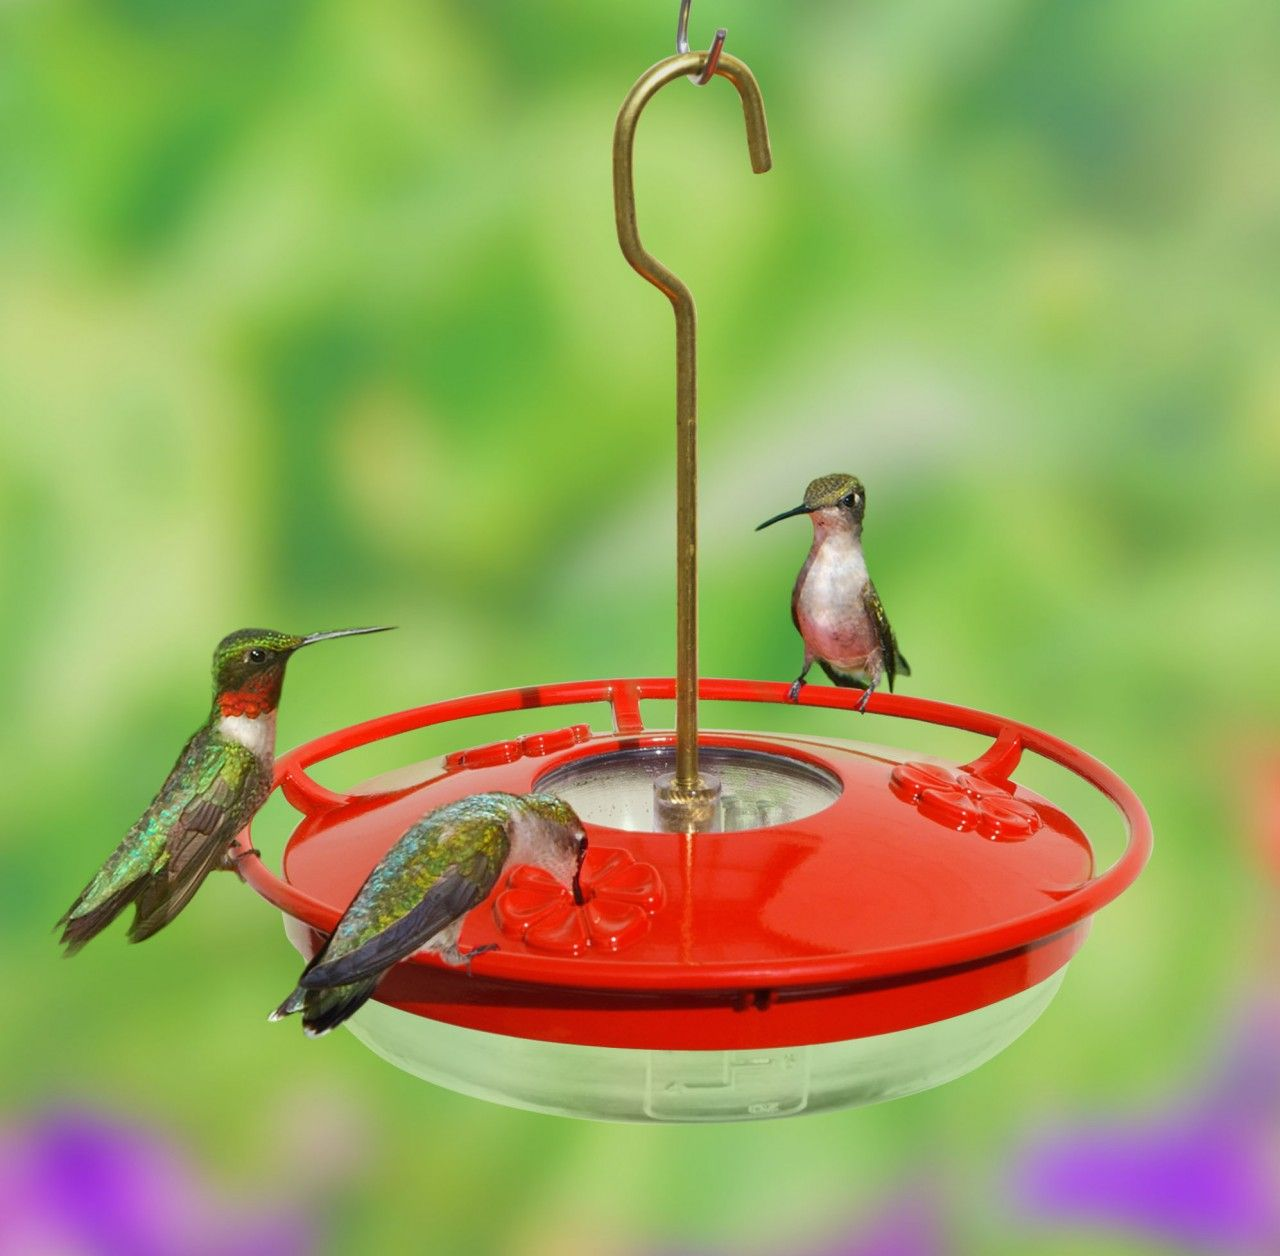 Common problems with hummingbird feeders what to do